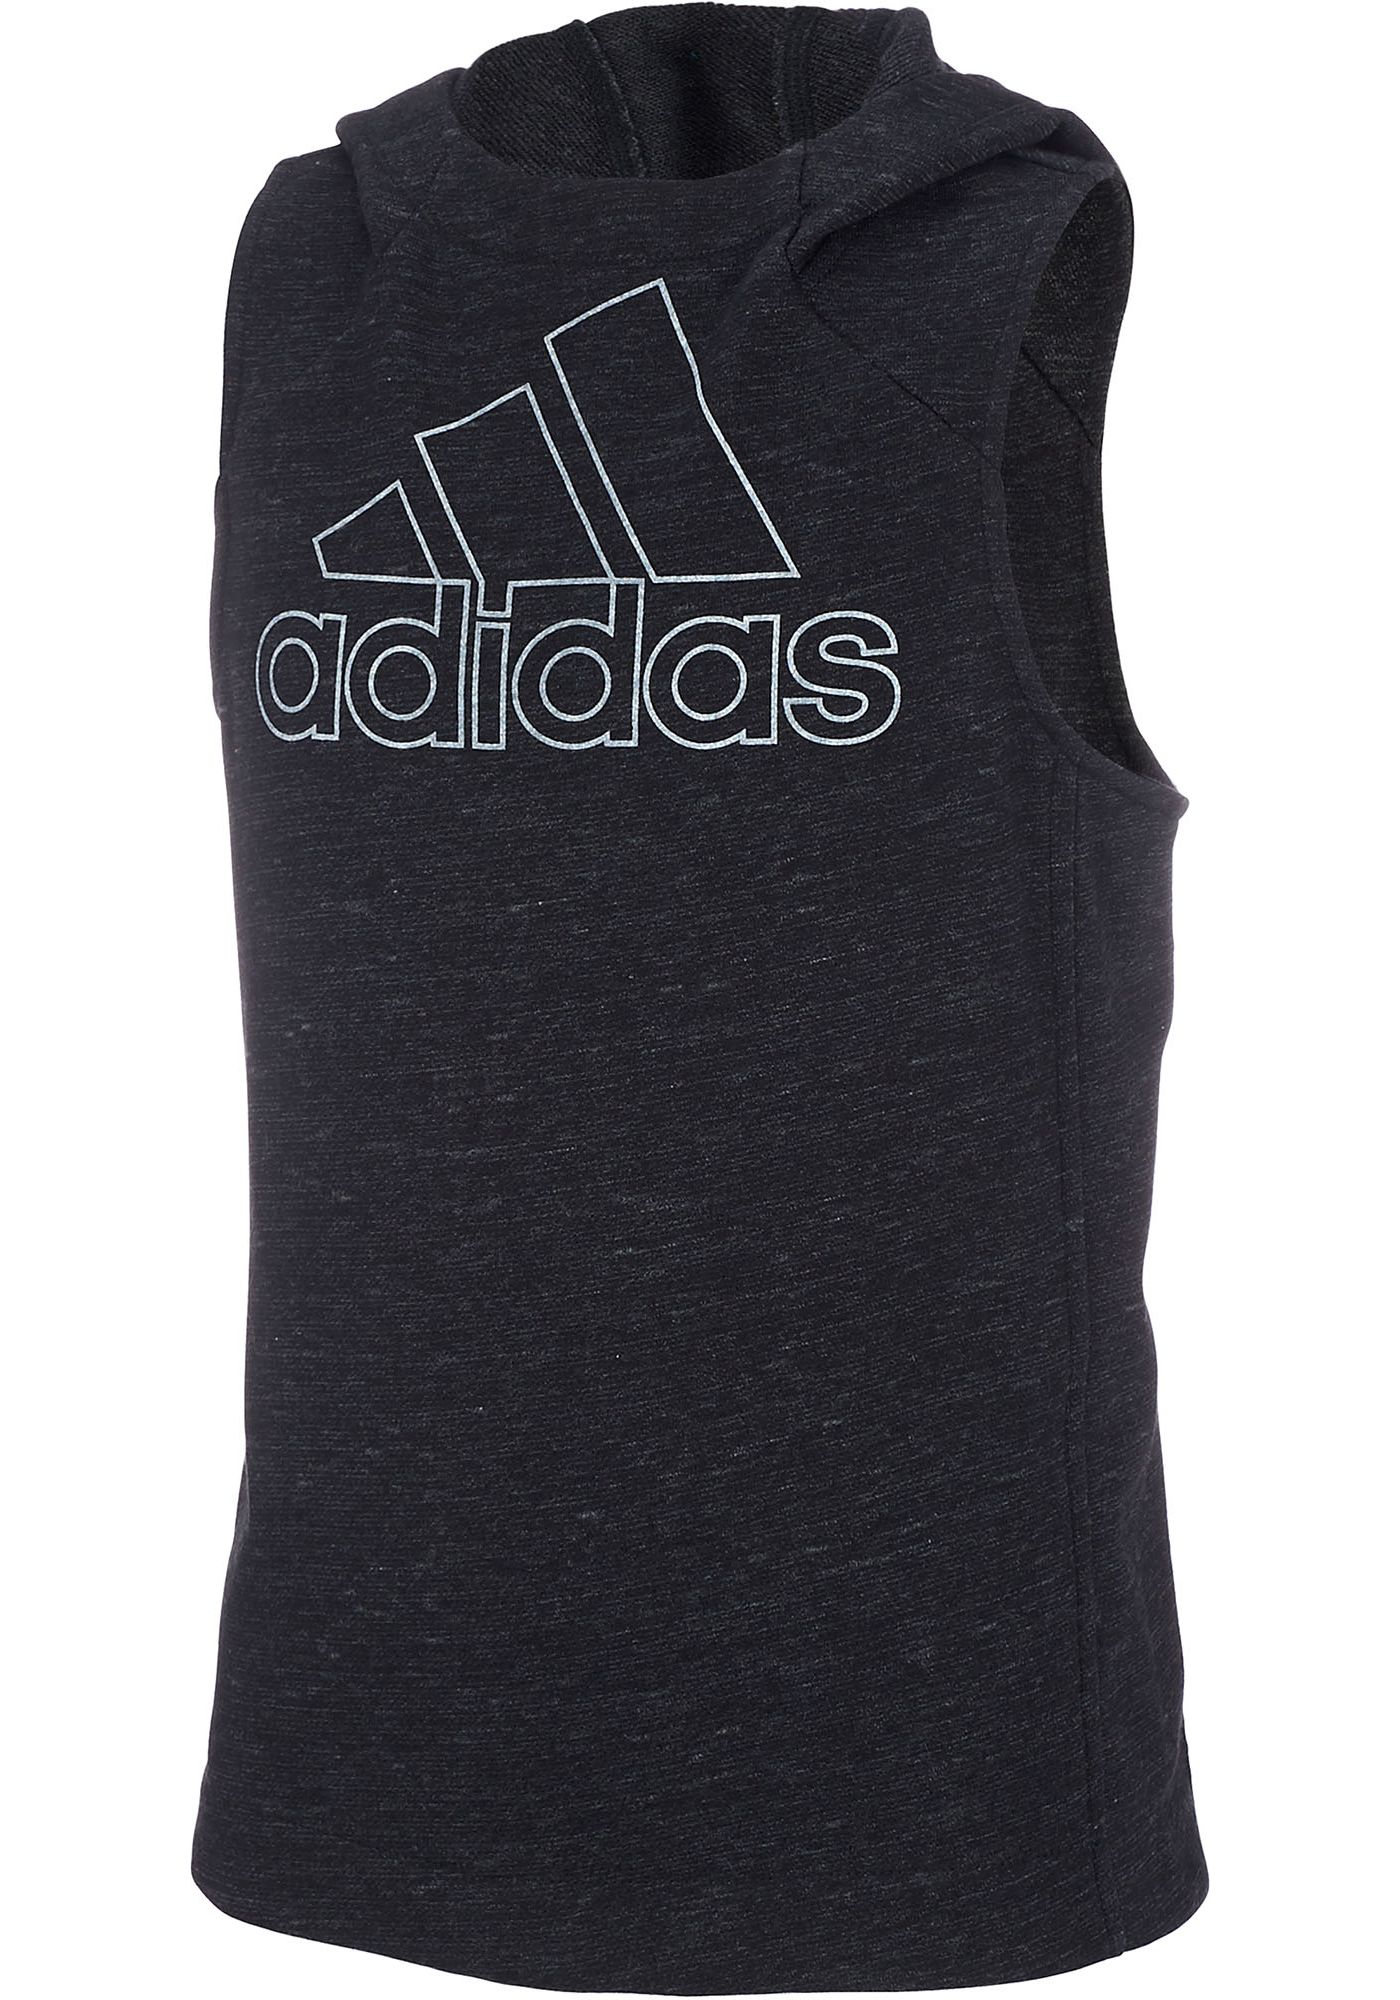 adidas Girls' Transition Sleeveless Hoodie